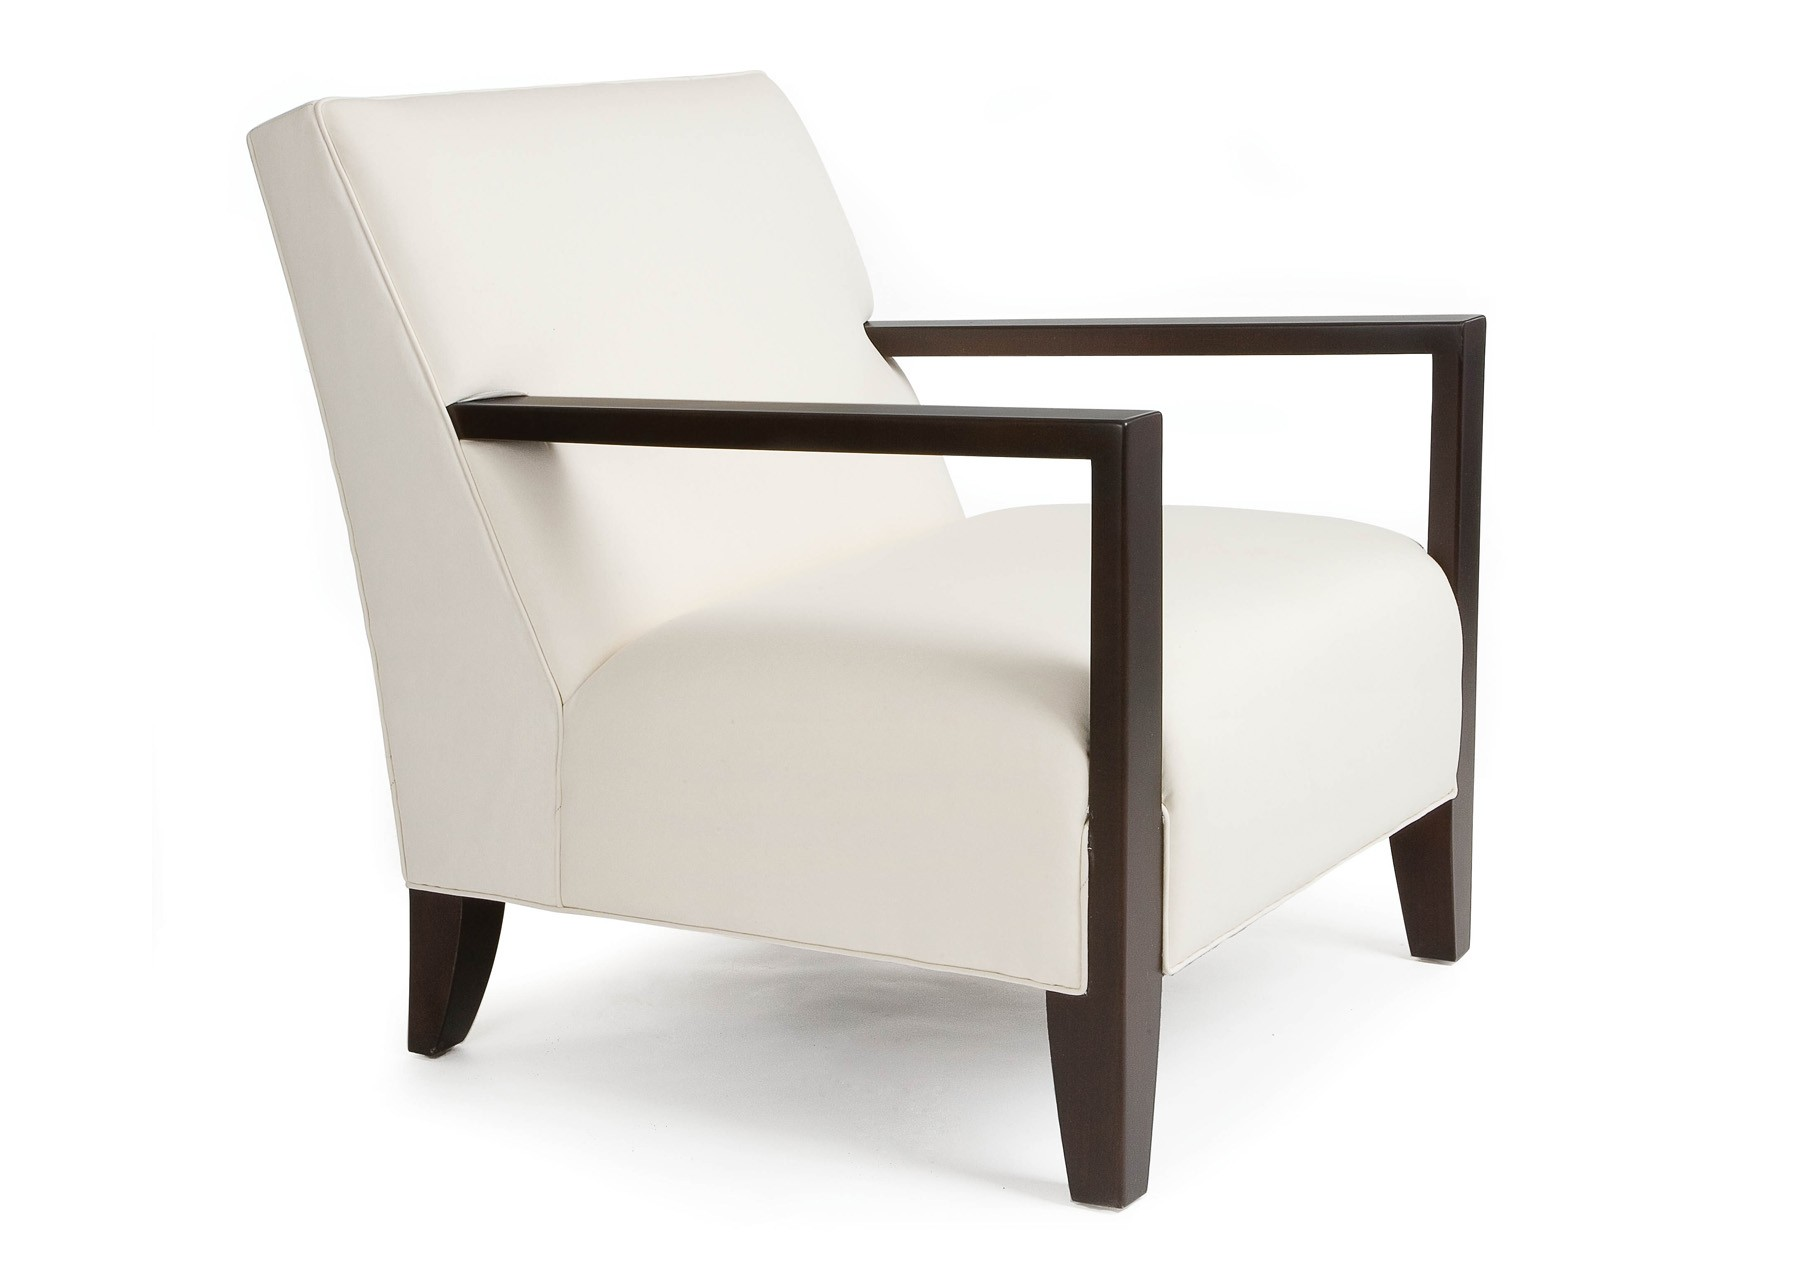 Cabot Wrenn Cw4912 Transition Open Arm Lounge Chair